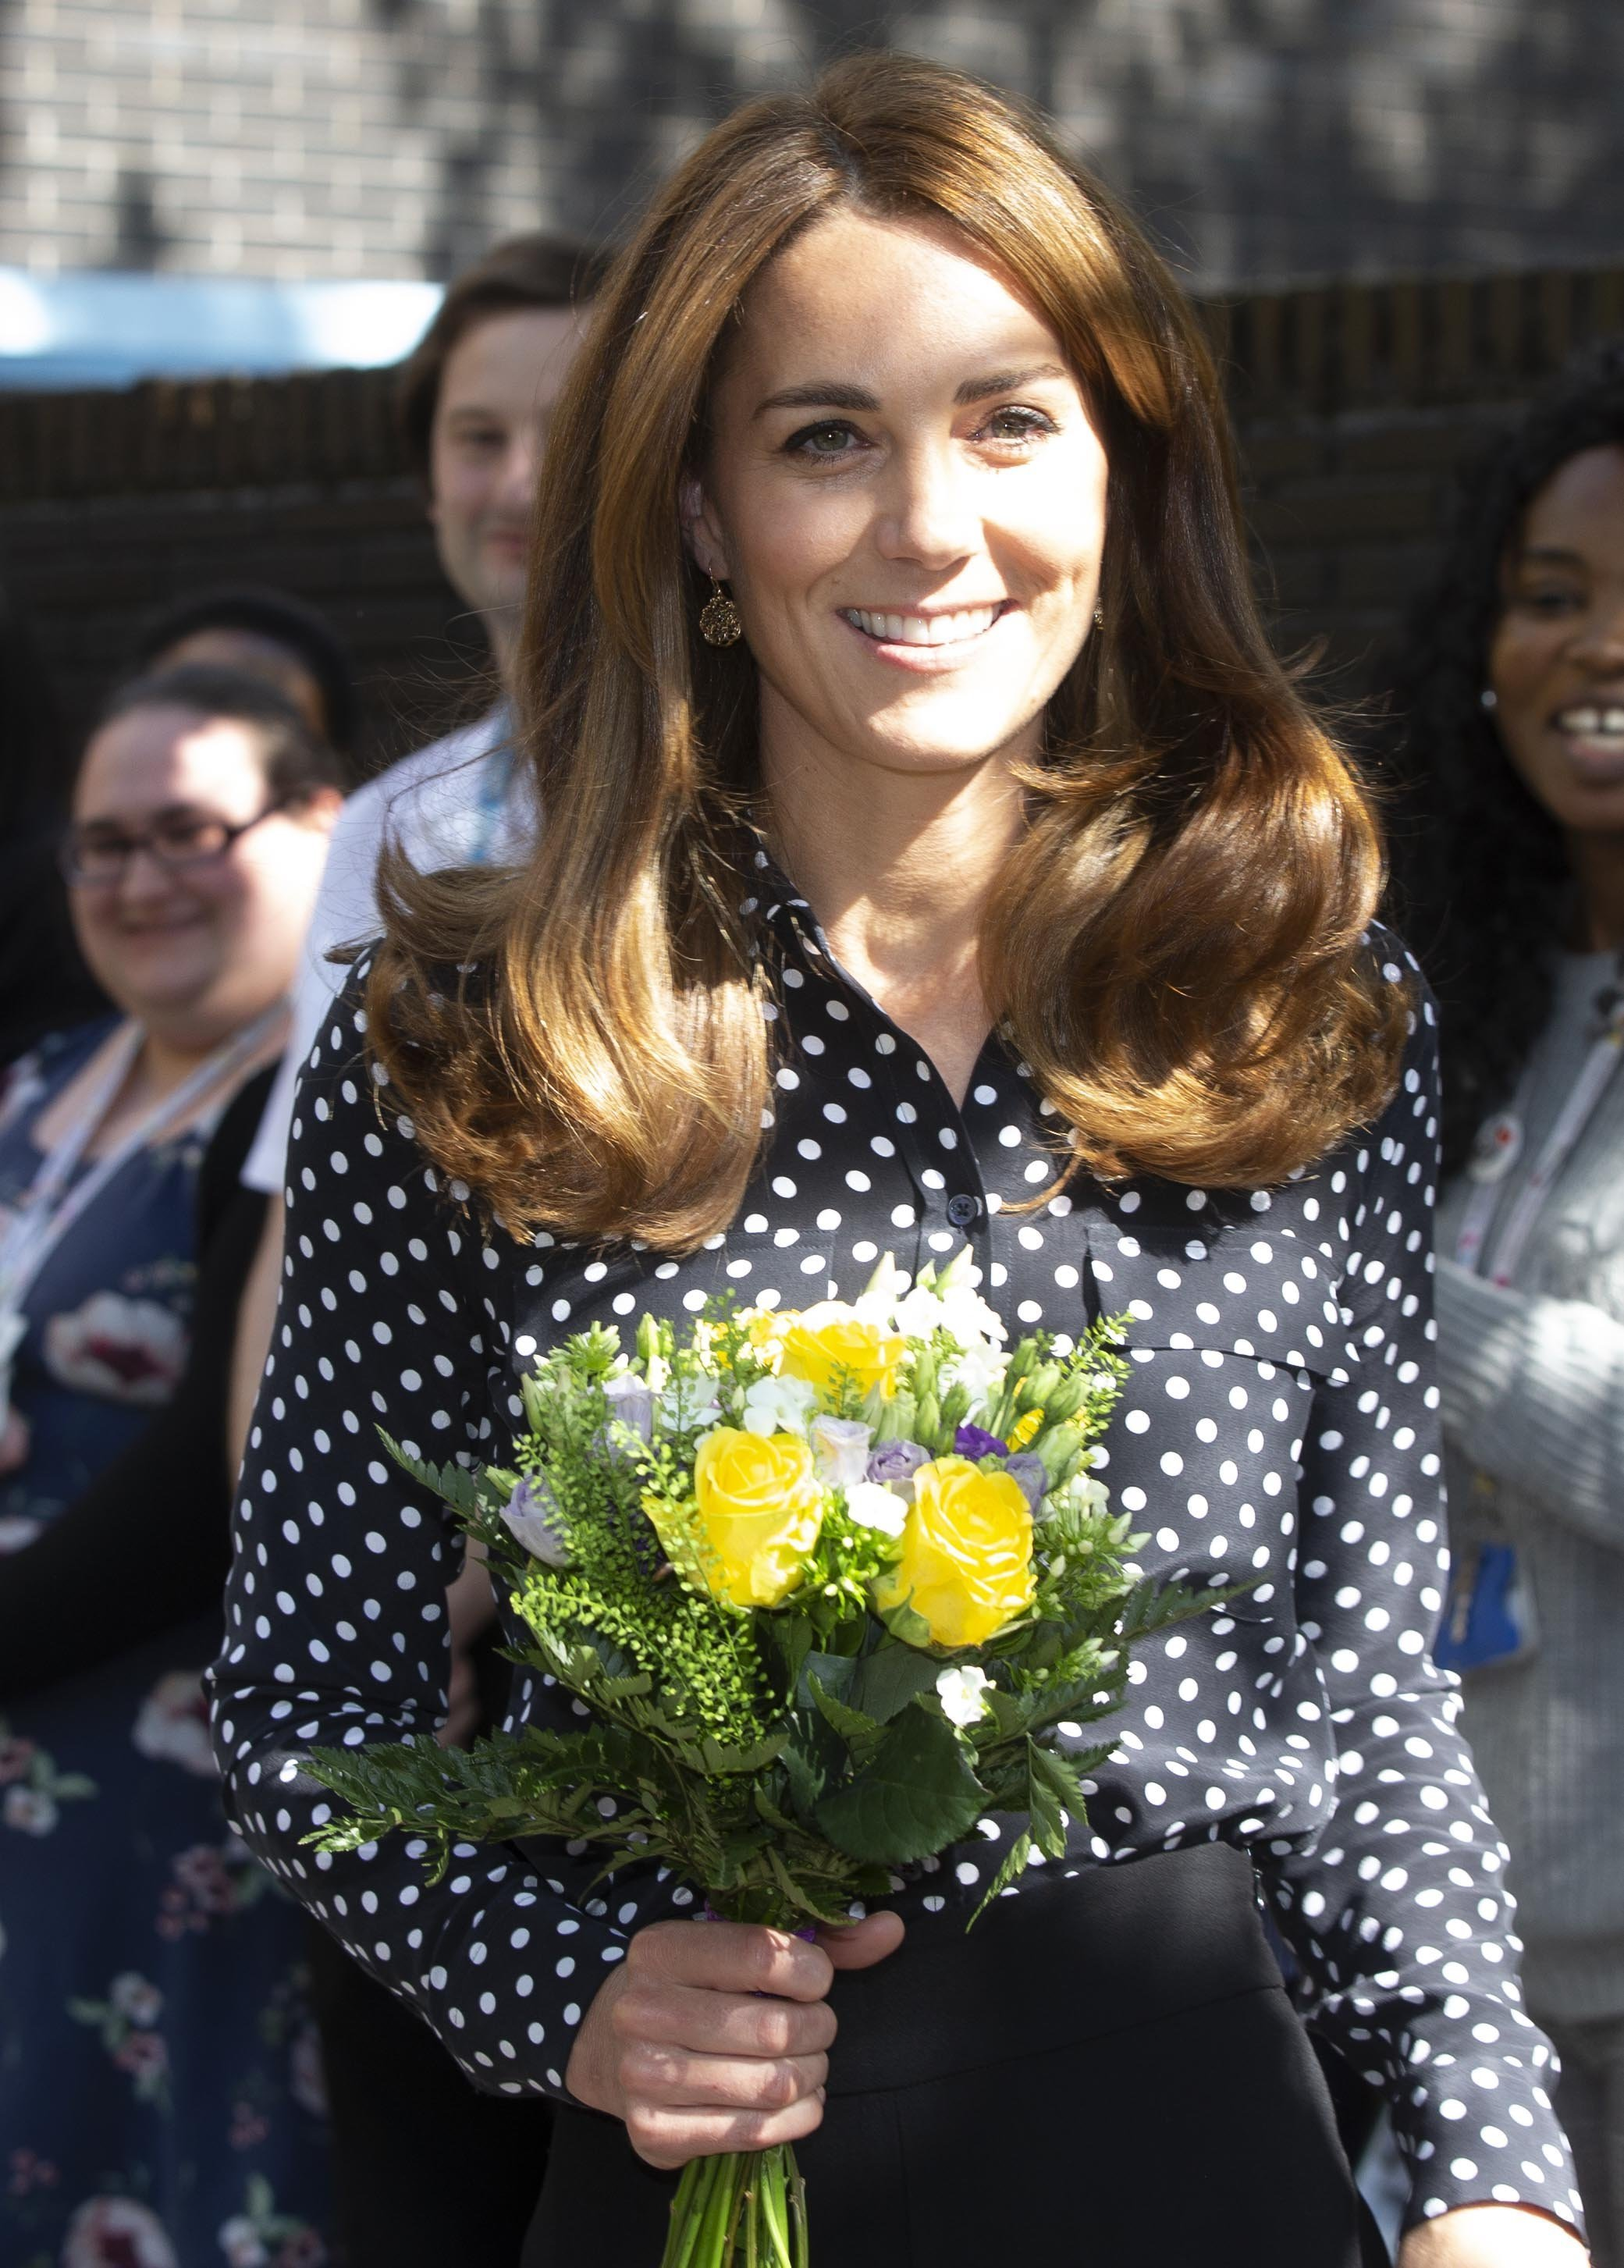 La duchesse Kate visite le Sunshine House Children and Young Peopleâs Health and Development Centre le 19 septembre 2019 à Londres, Angleterre | Photo : Getty Images